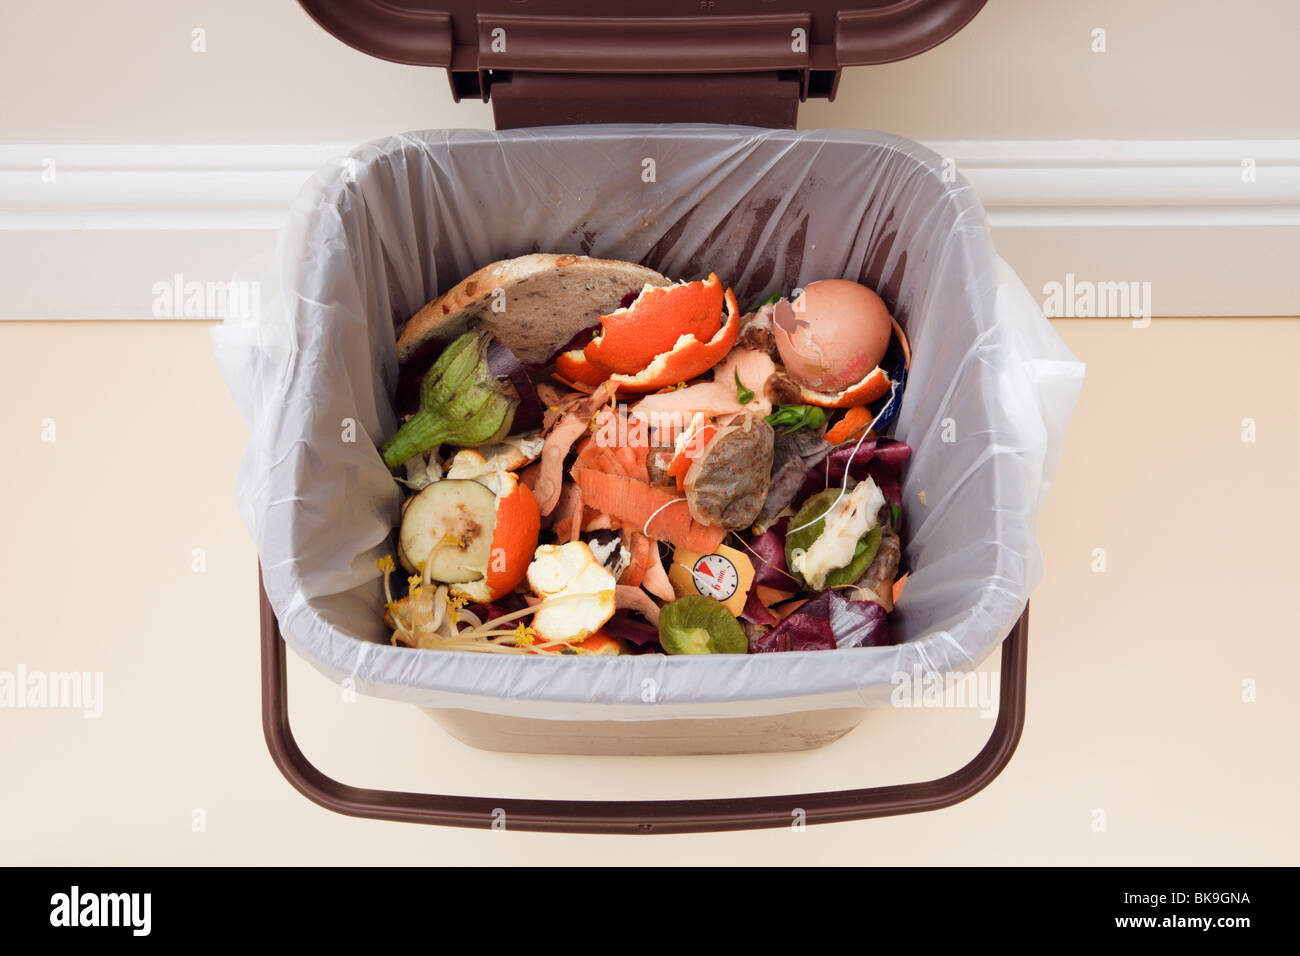 Top down of domestic household food waste in indoor food recycling bin caddy with lid open indoors. England UK Britain - Stock Image